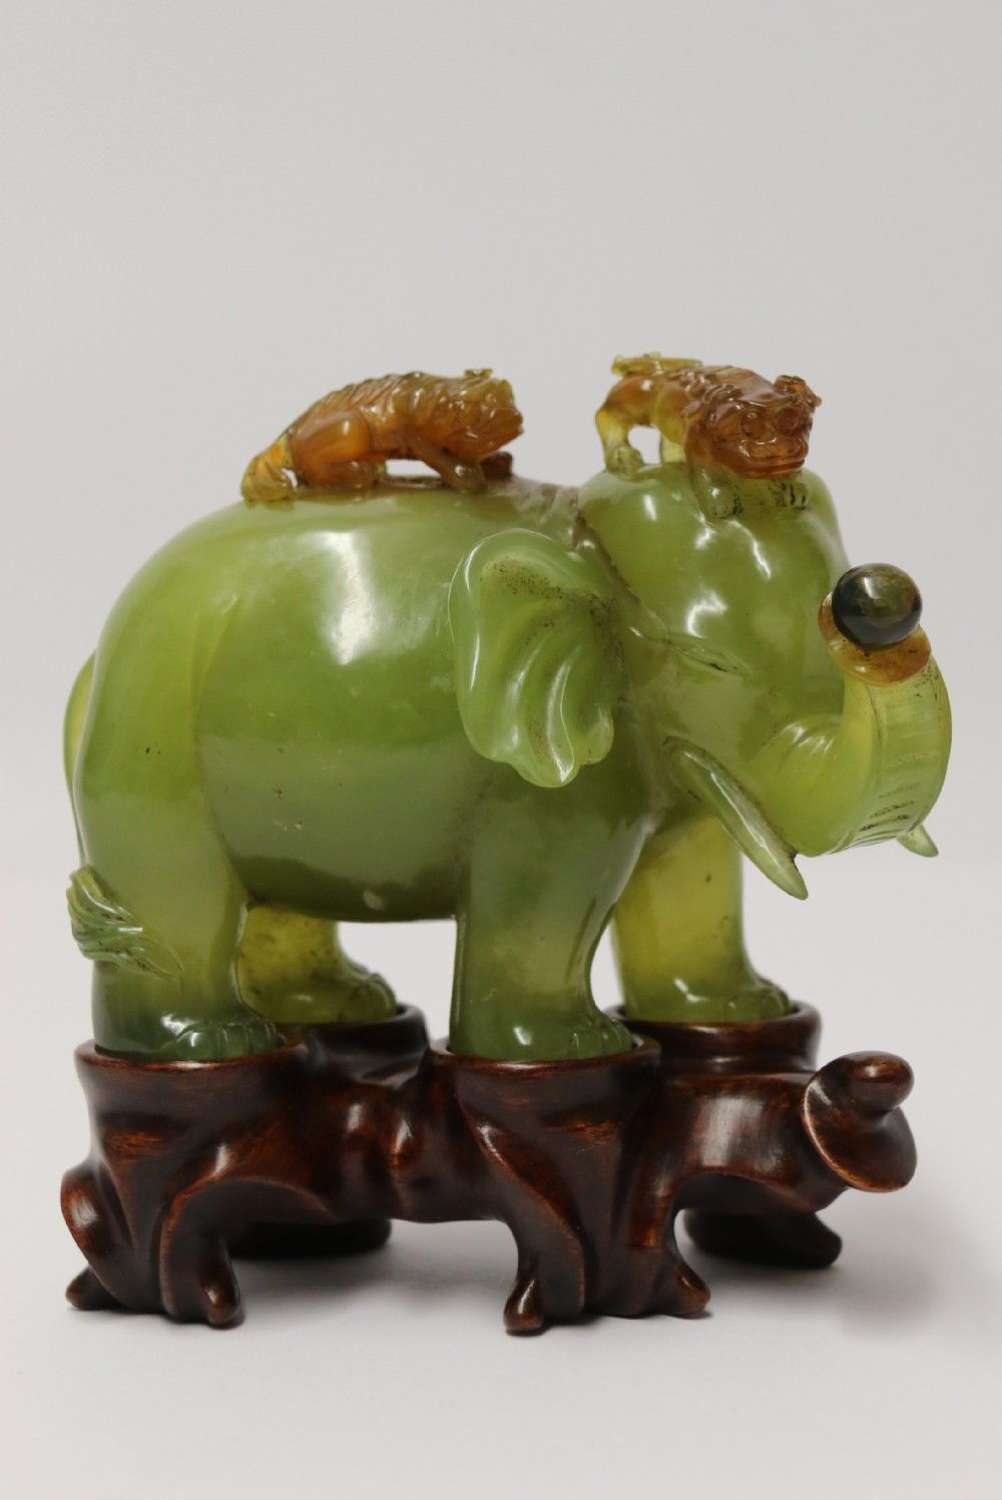 A Fine Chinese Carved Hardstone Study Of A Elephant  a Fine Chinese Carved Hardstone Study Of A Elephant  a Fine Chinese Carved Hardstone Study Of A Elephant